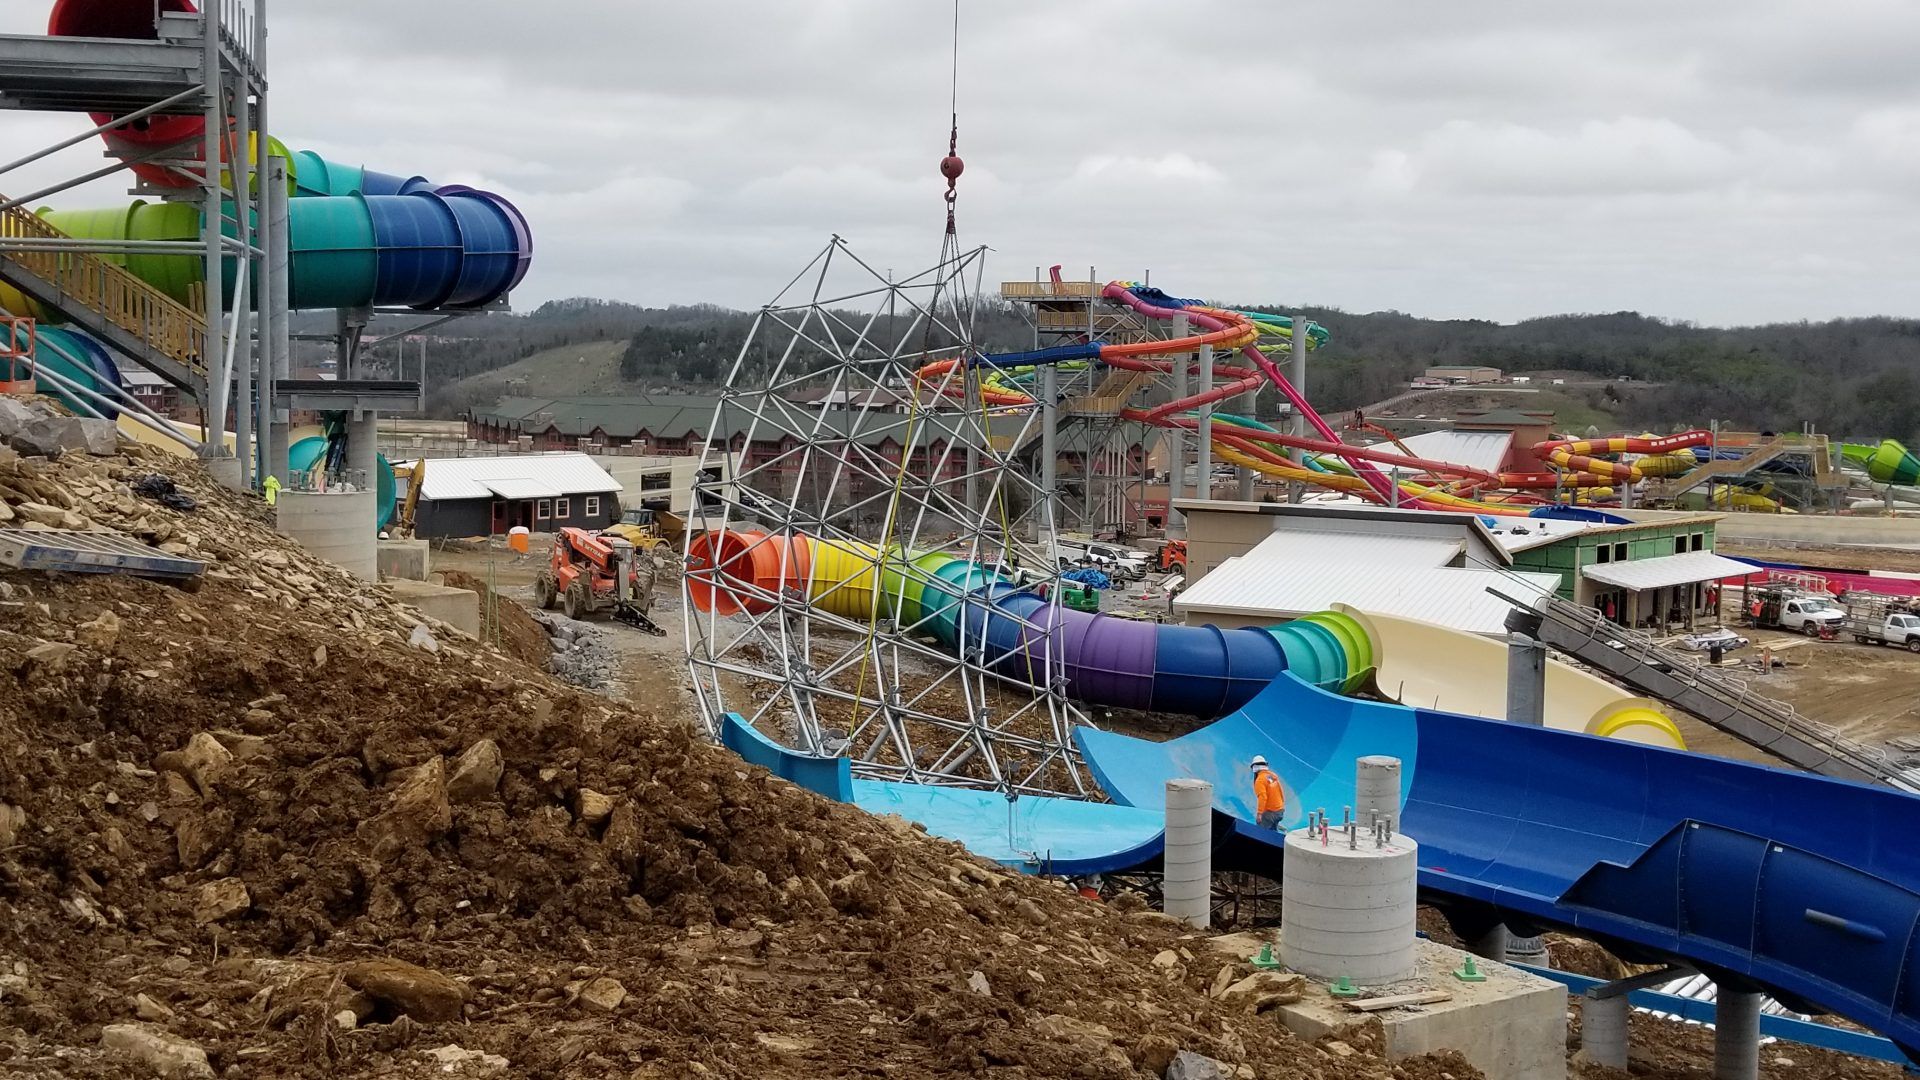 Construction progress at Soaky Mountain Waterpark in Tennessee